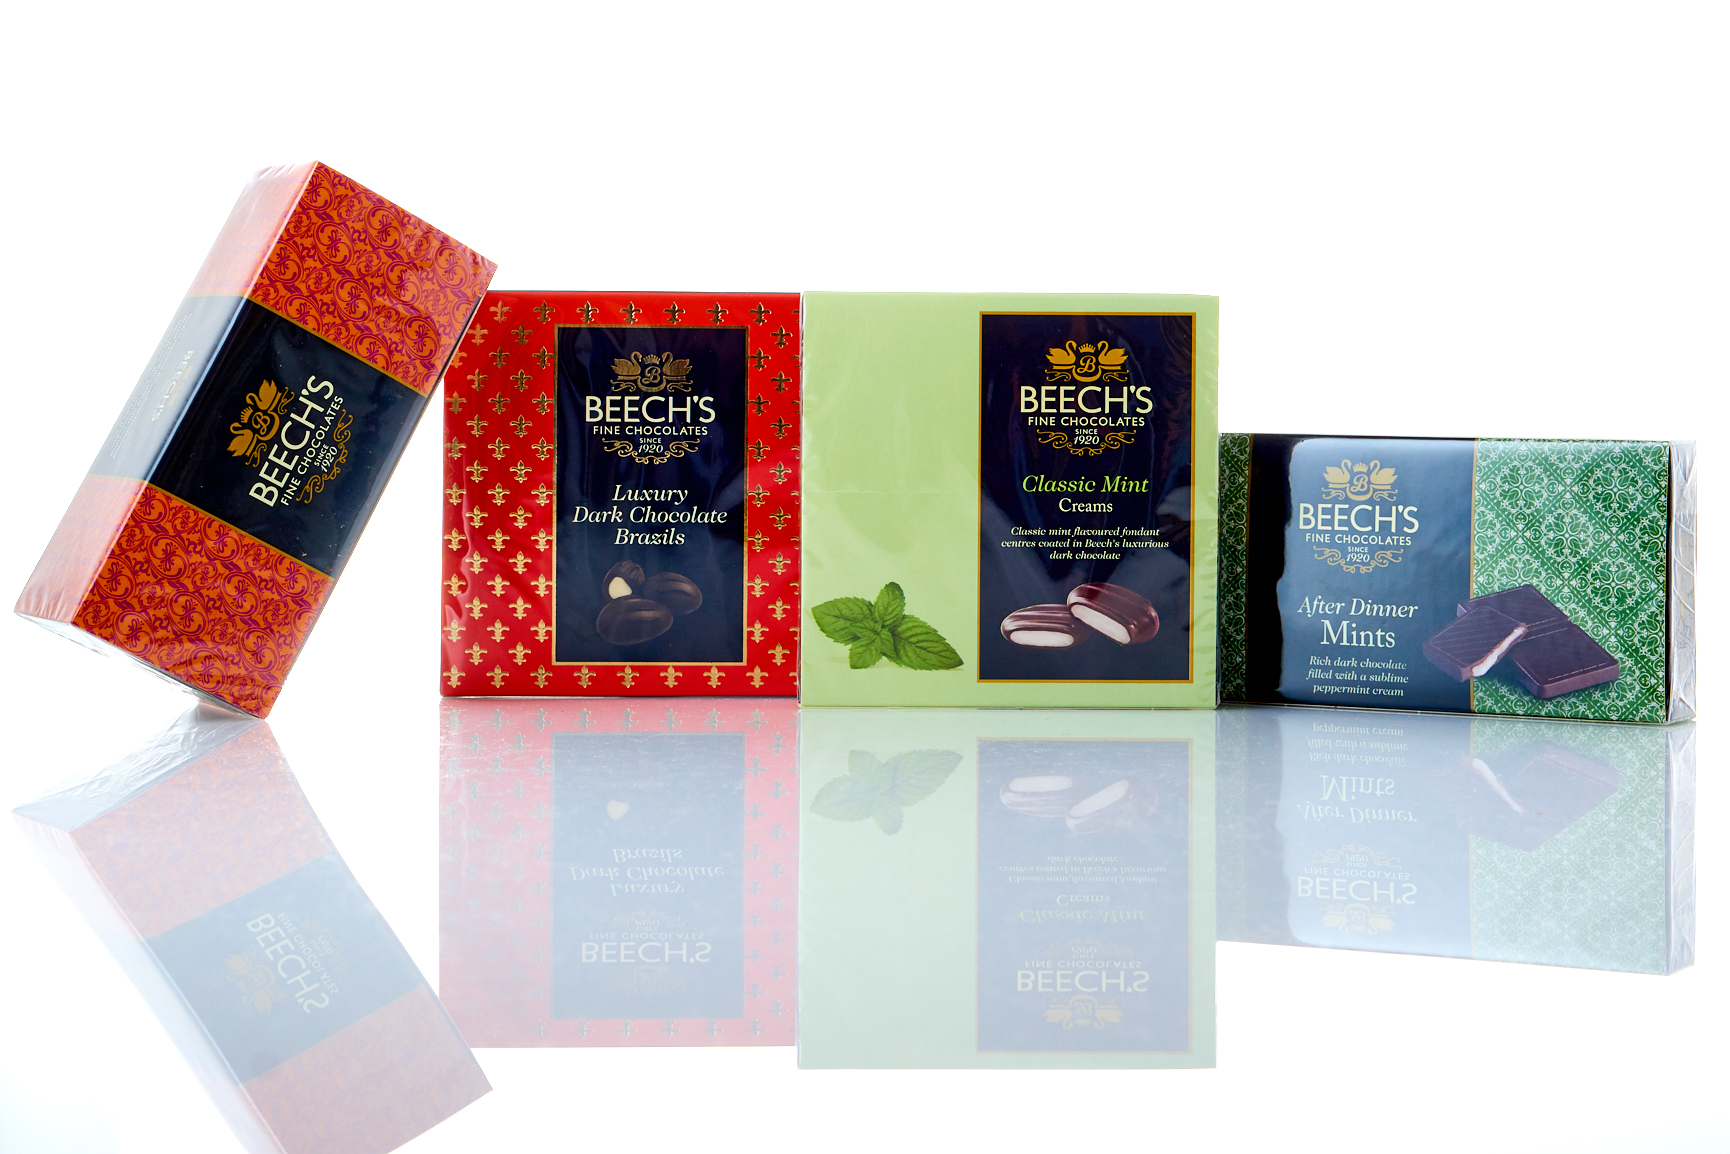 Bean and Pod Product Pack Shots Photography